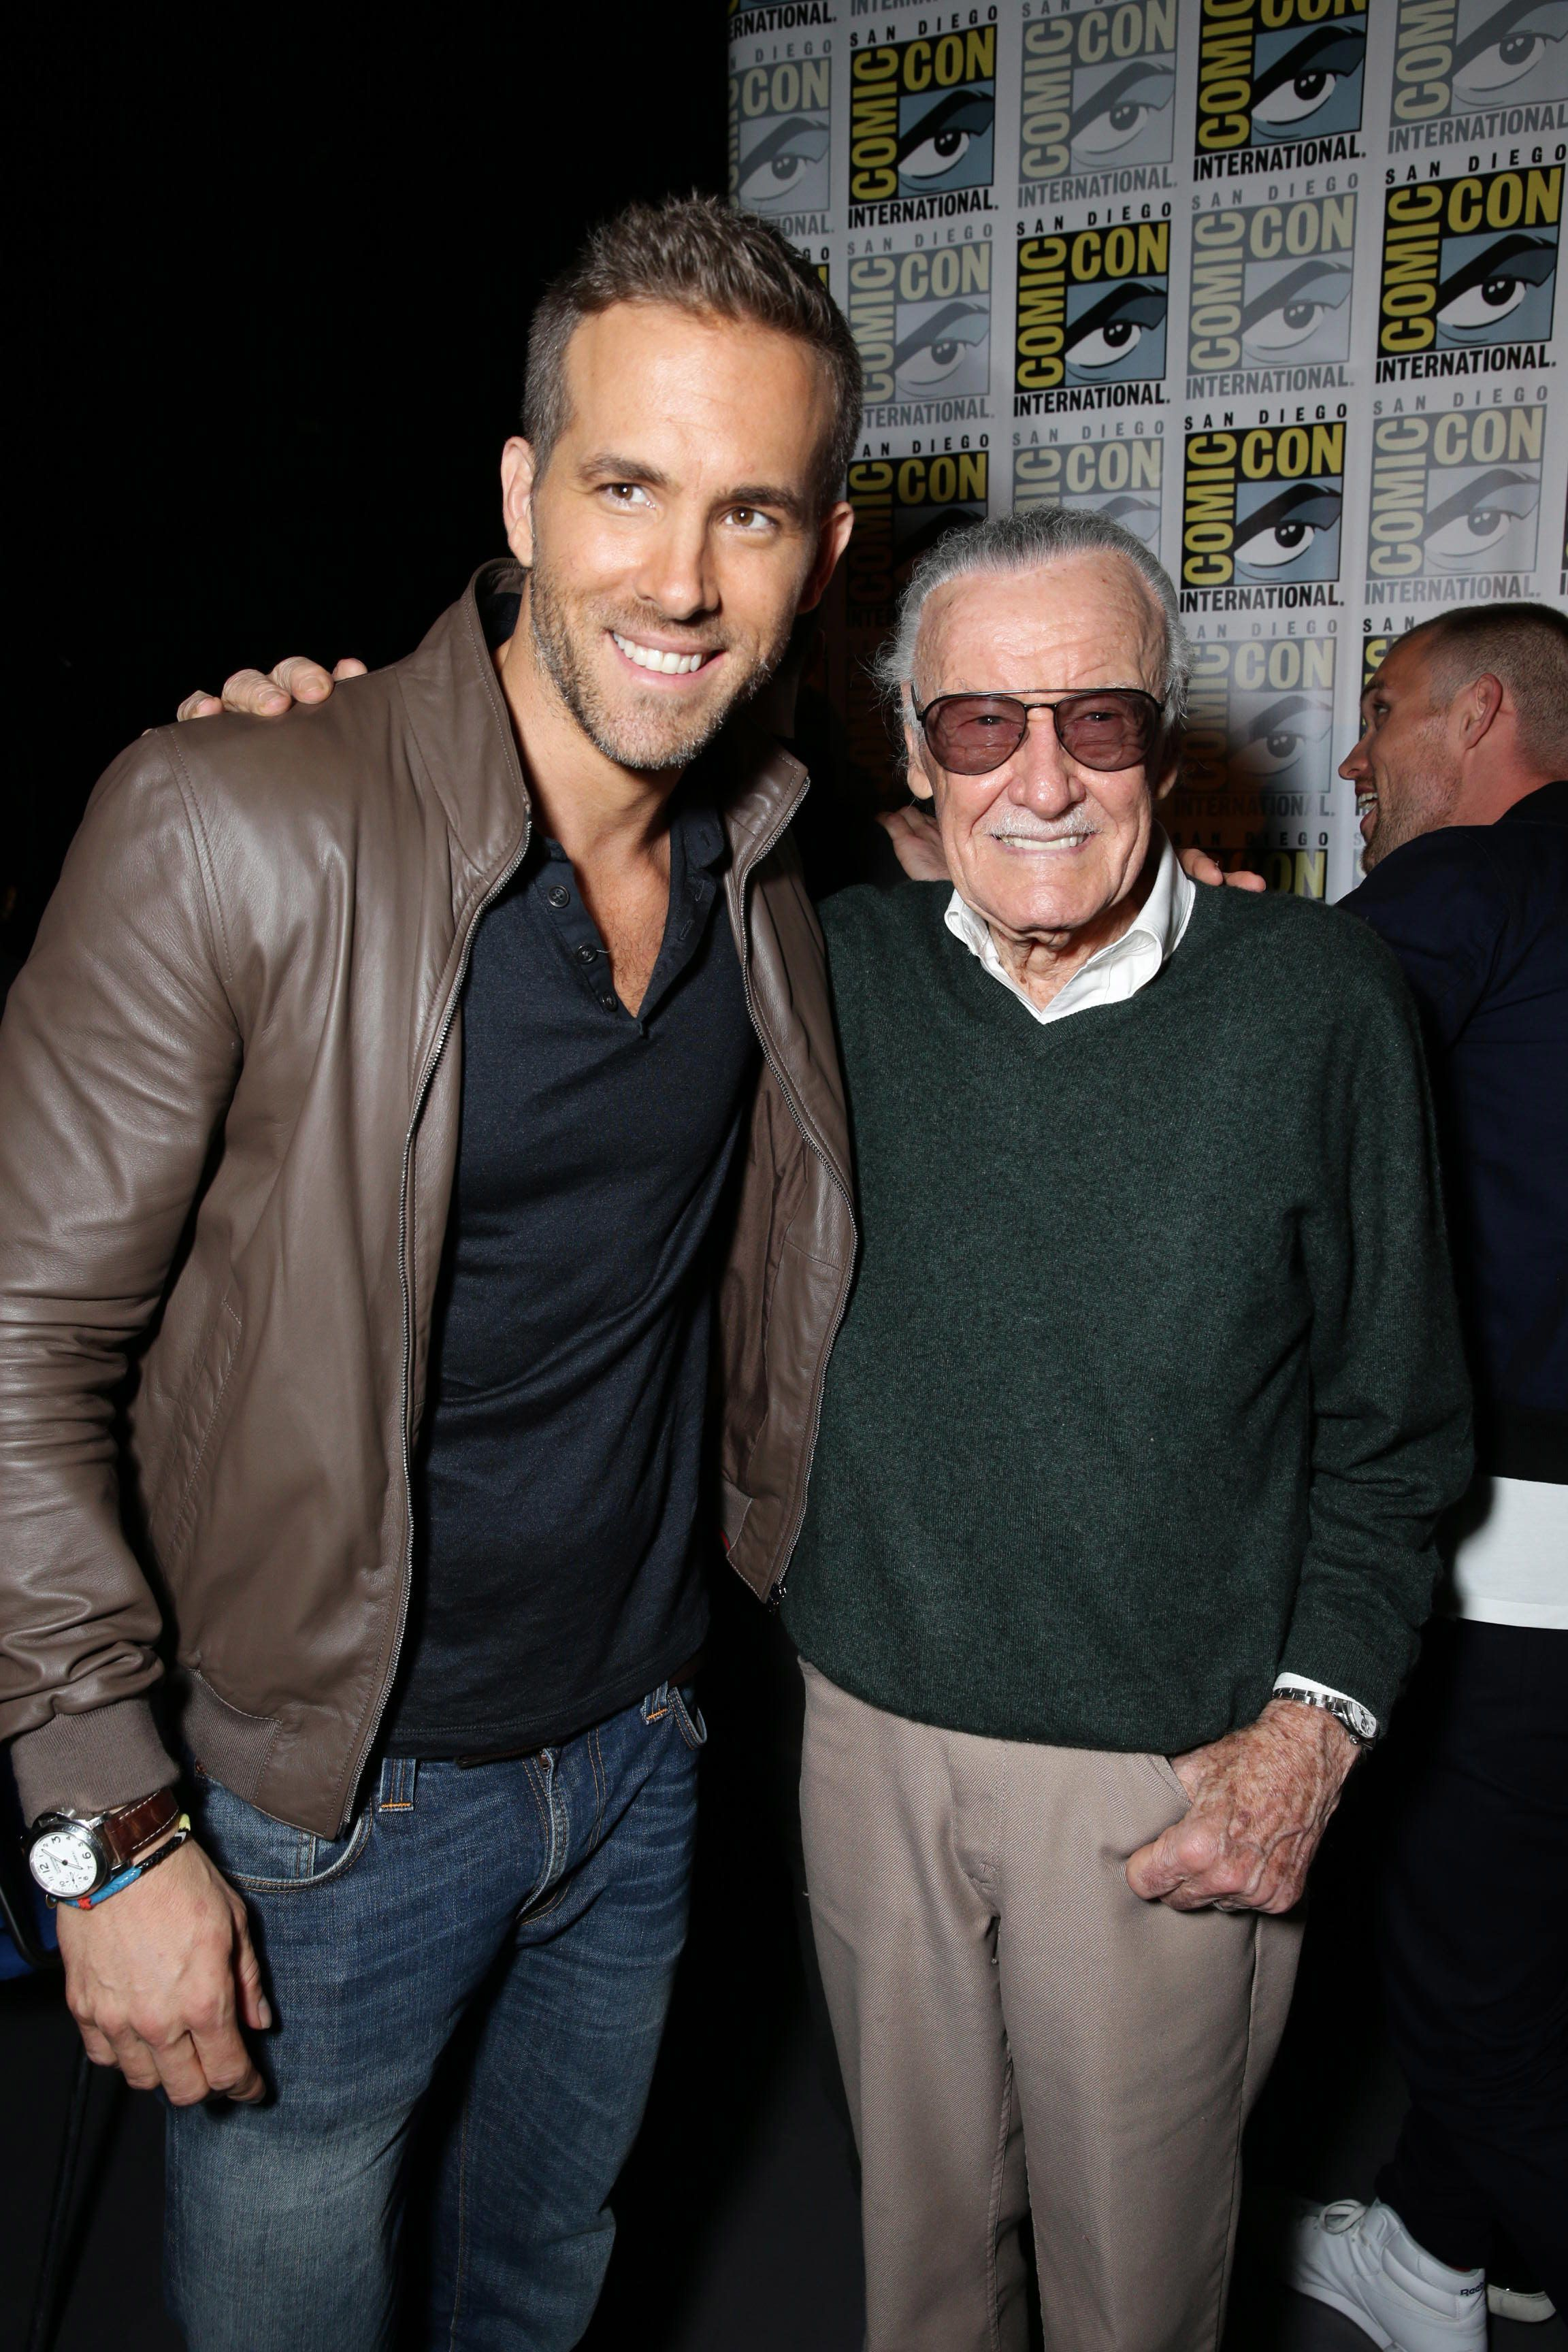 Ryan Reynolds and Stan Lee seen at the Twentieth Century Fox Presentation at 2015 Comic Con on Saturday, July 11, 2015, in San Diego. (Photo by Eric Charbonneau/Invision for Twentieth Century Fox/AP Images)